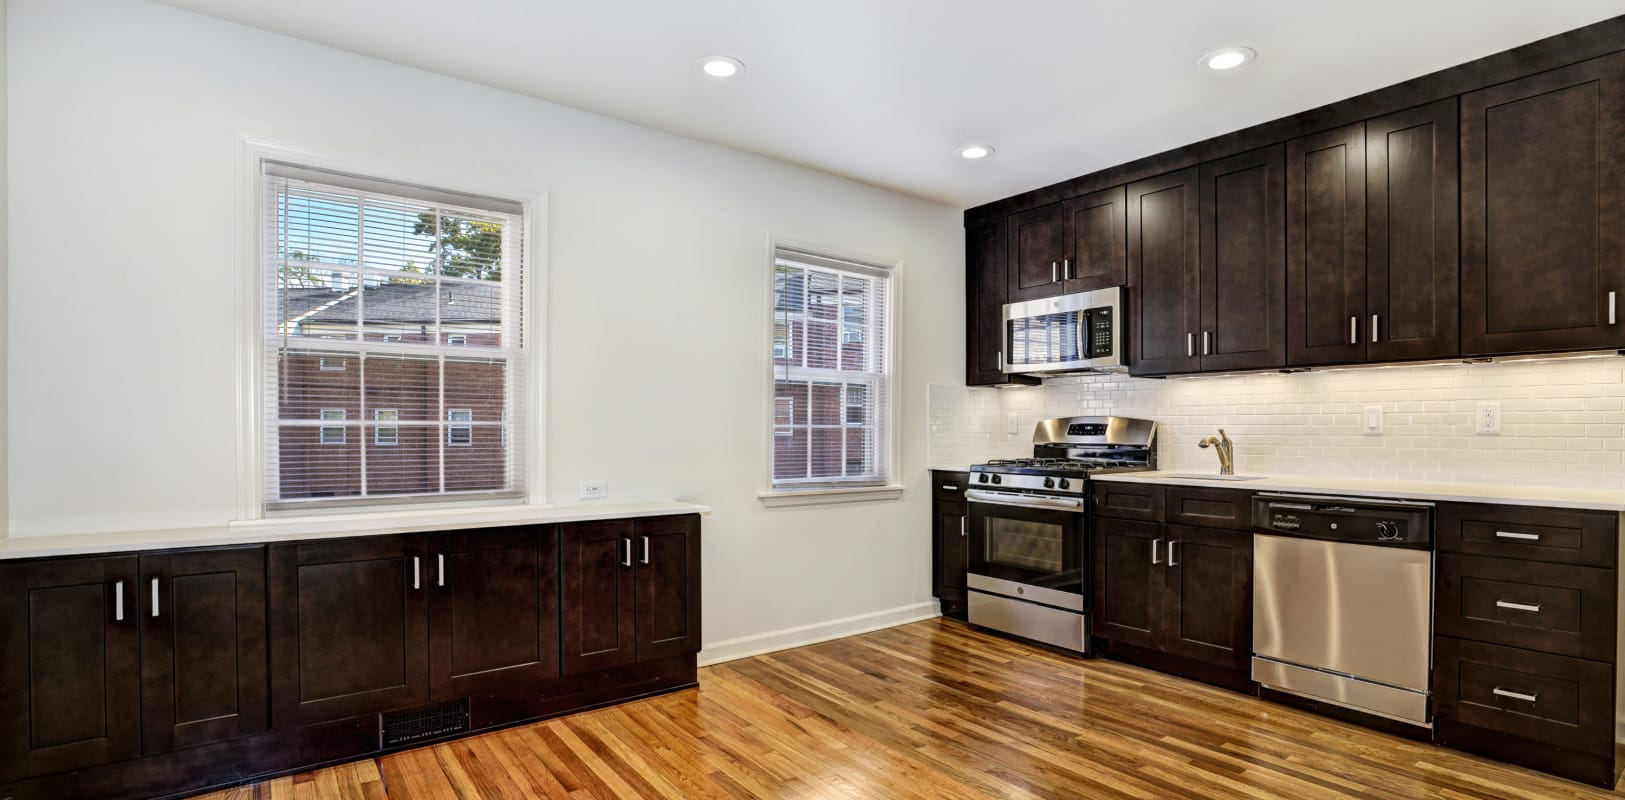 Large kitchen with plenty of cabinetry at General Wayne Townhomes and Ridgedale Gardens in Madison, New Jersey